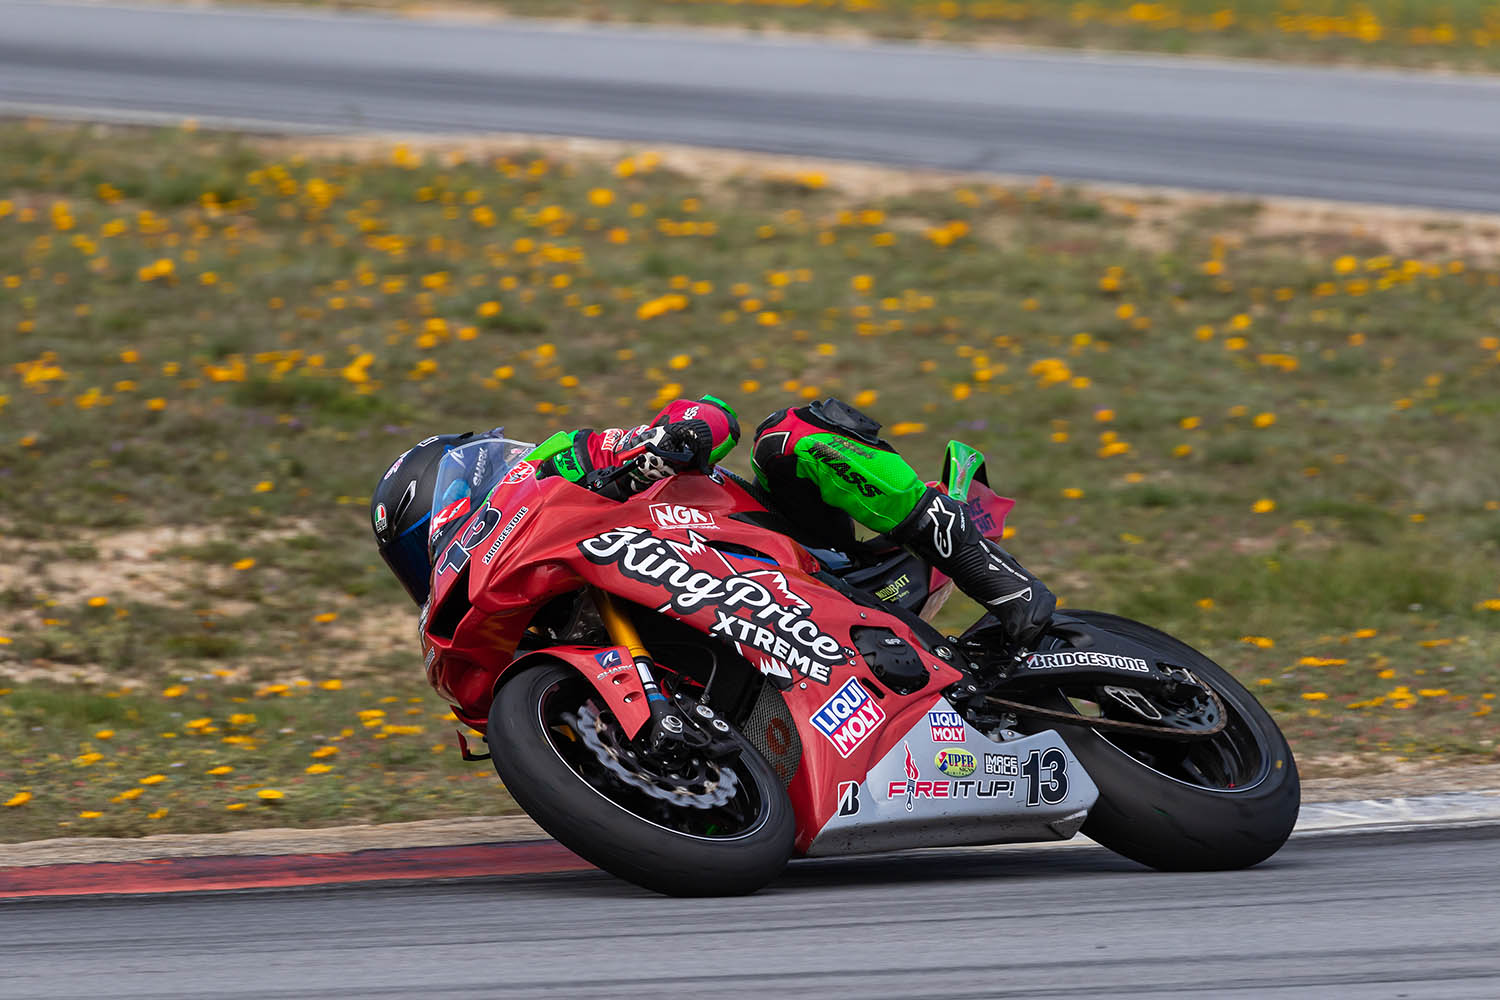 Dino Iozzo won the SuperSport 600 class in the second heat